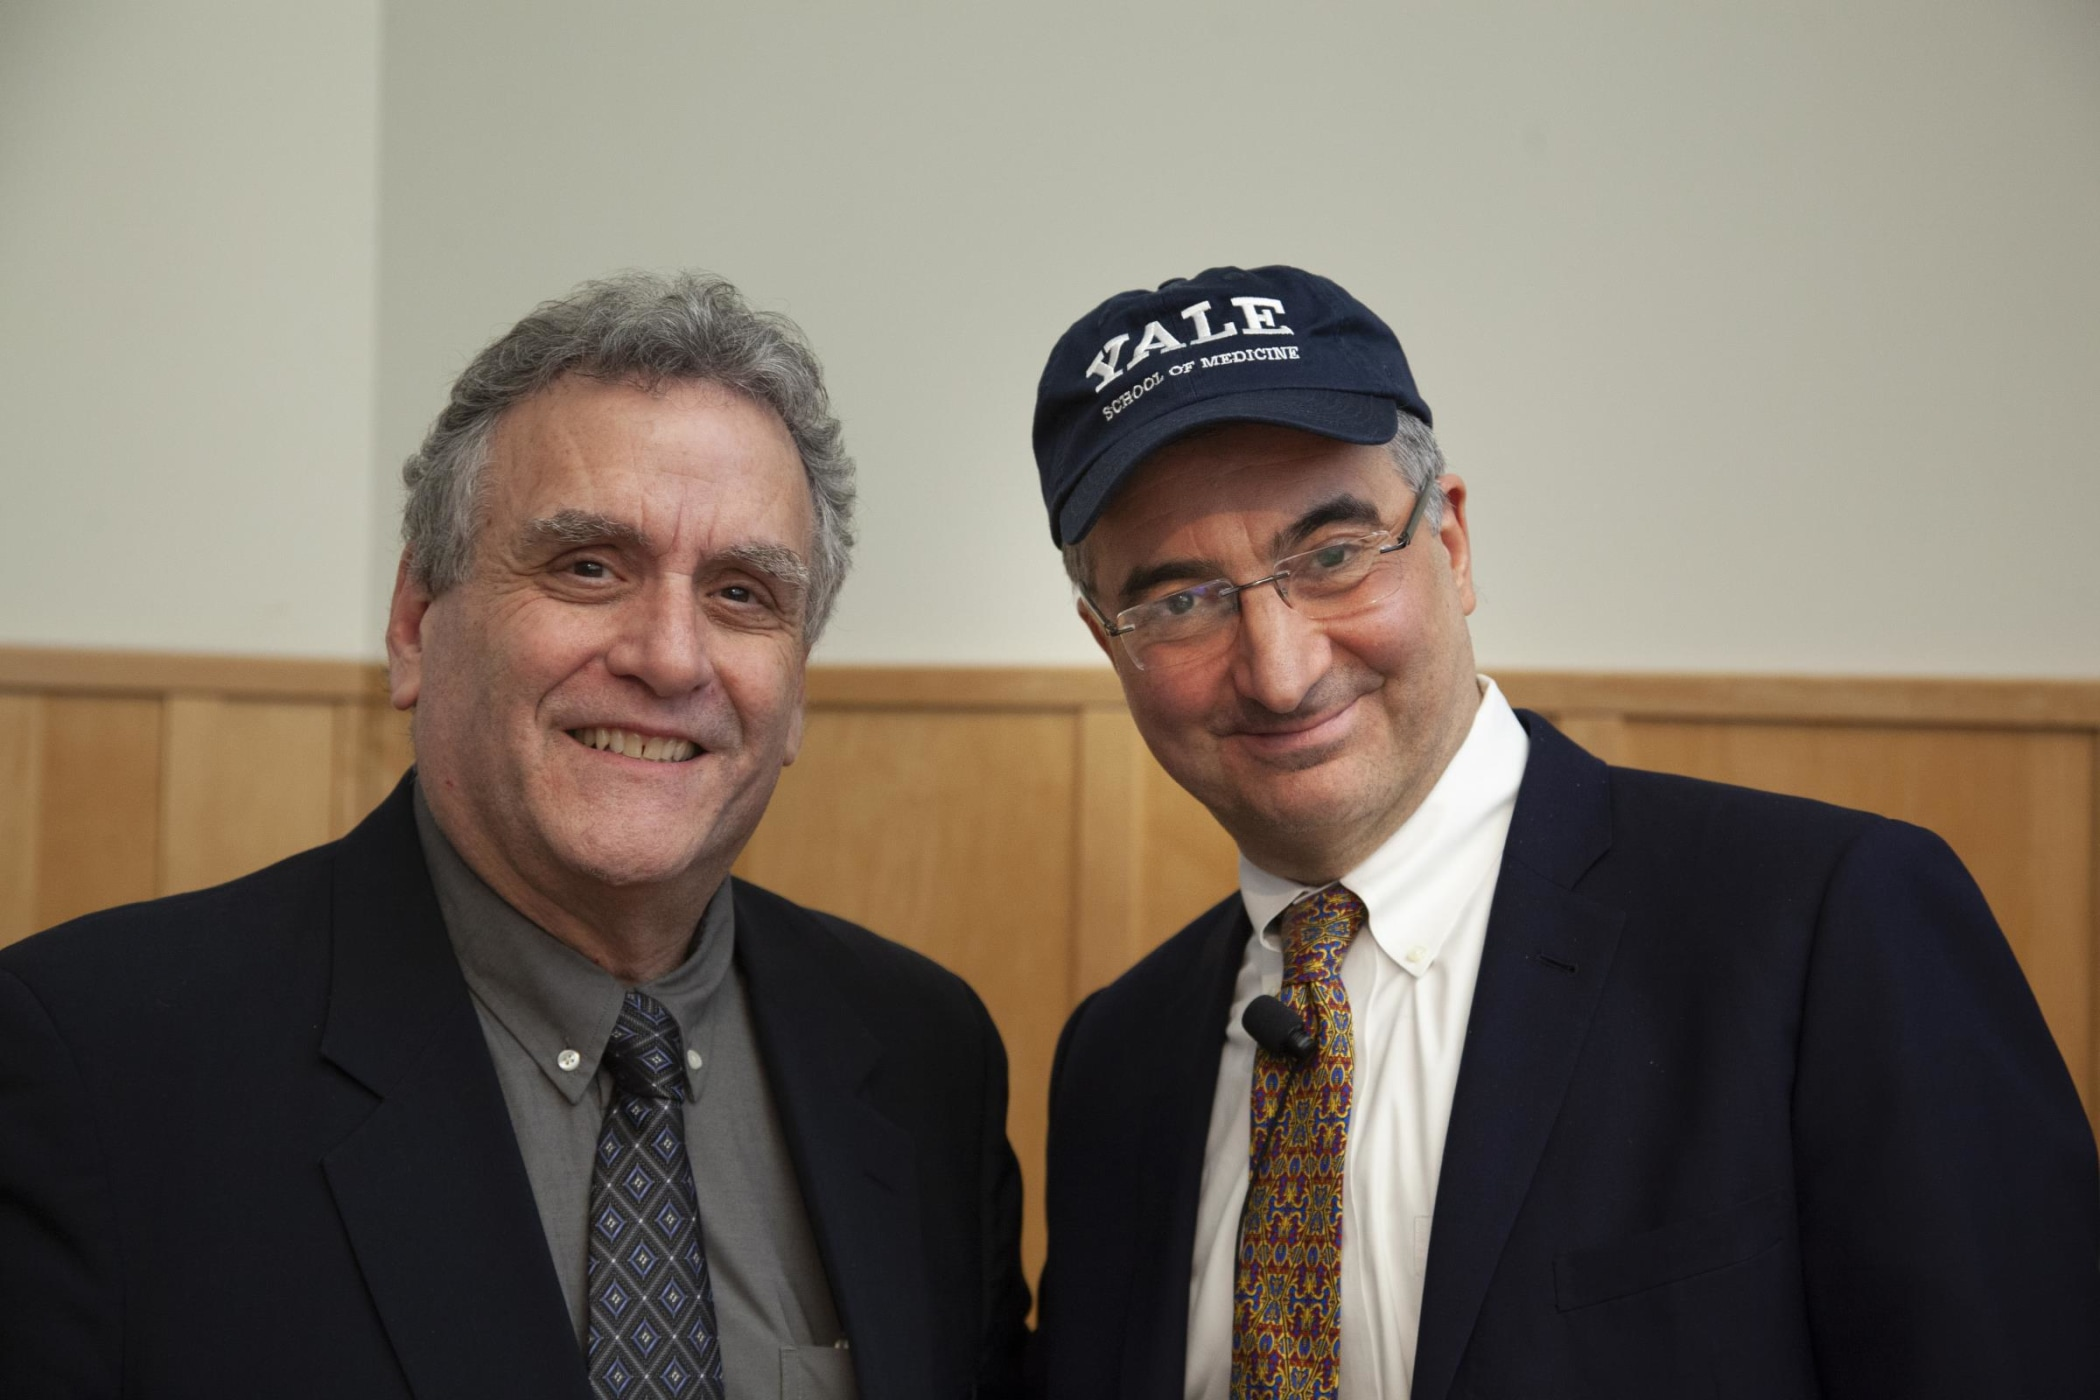 Do Religion and Spirituality Have Roles in Medicine Today talk with Dr. Robert Klitzman, April 2, 2019